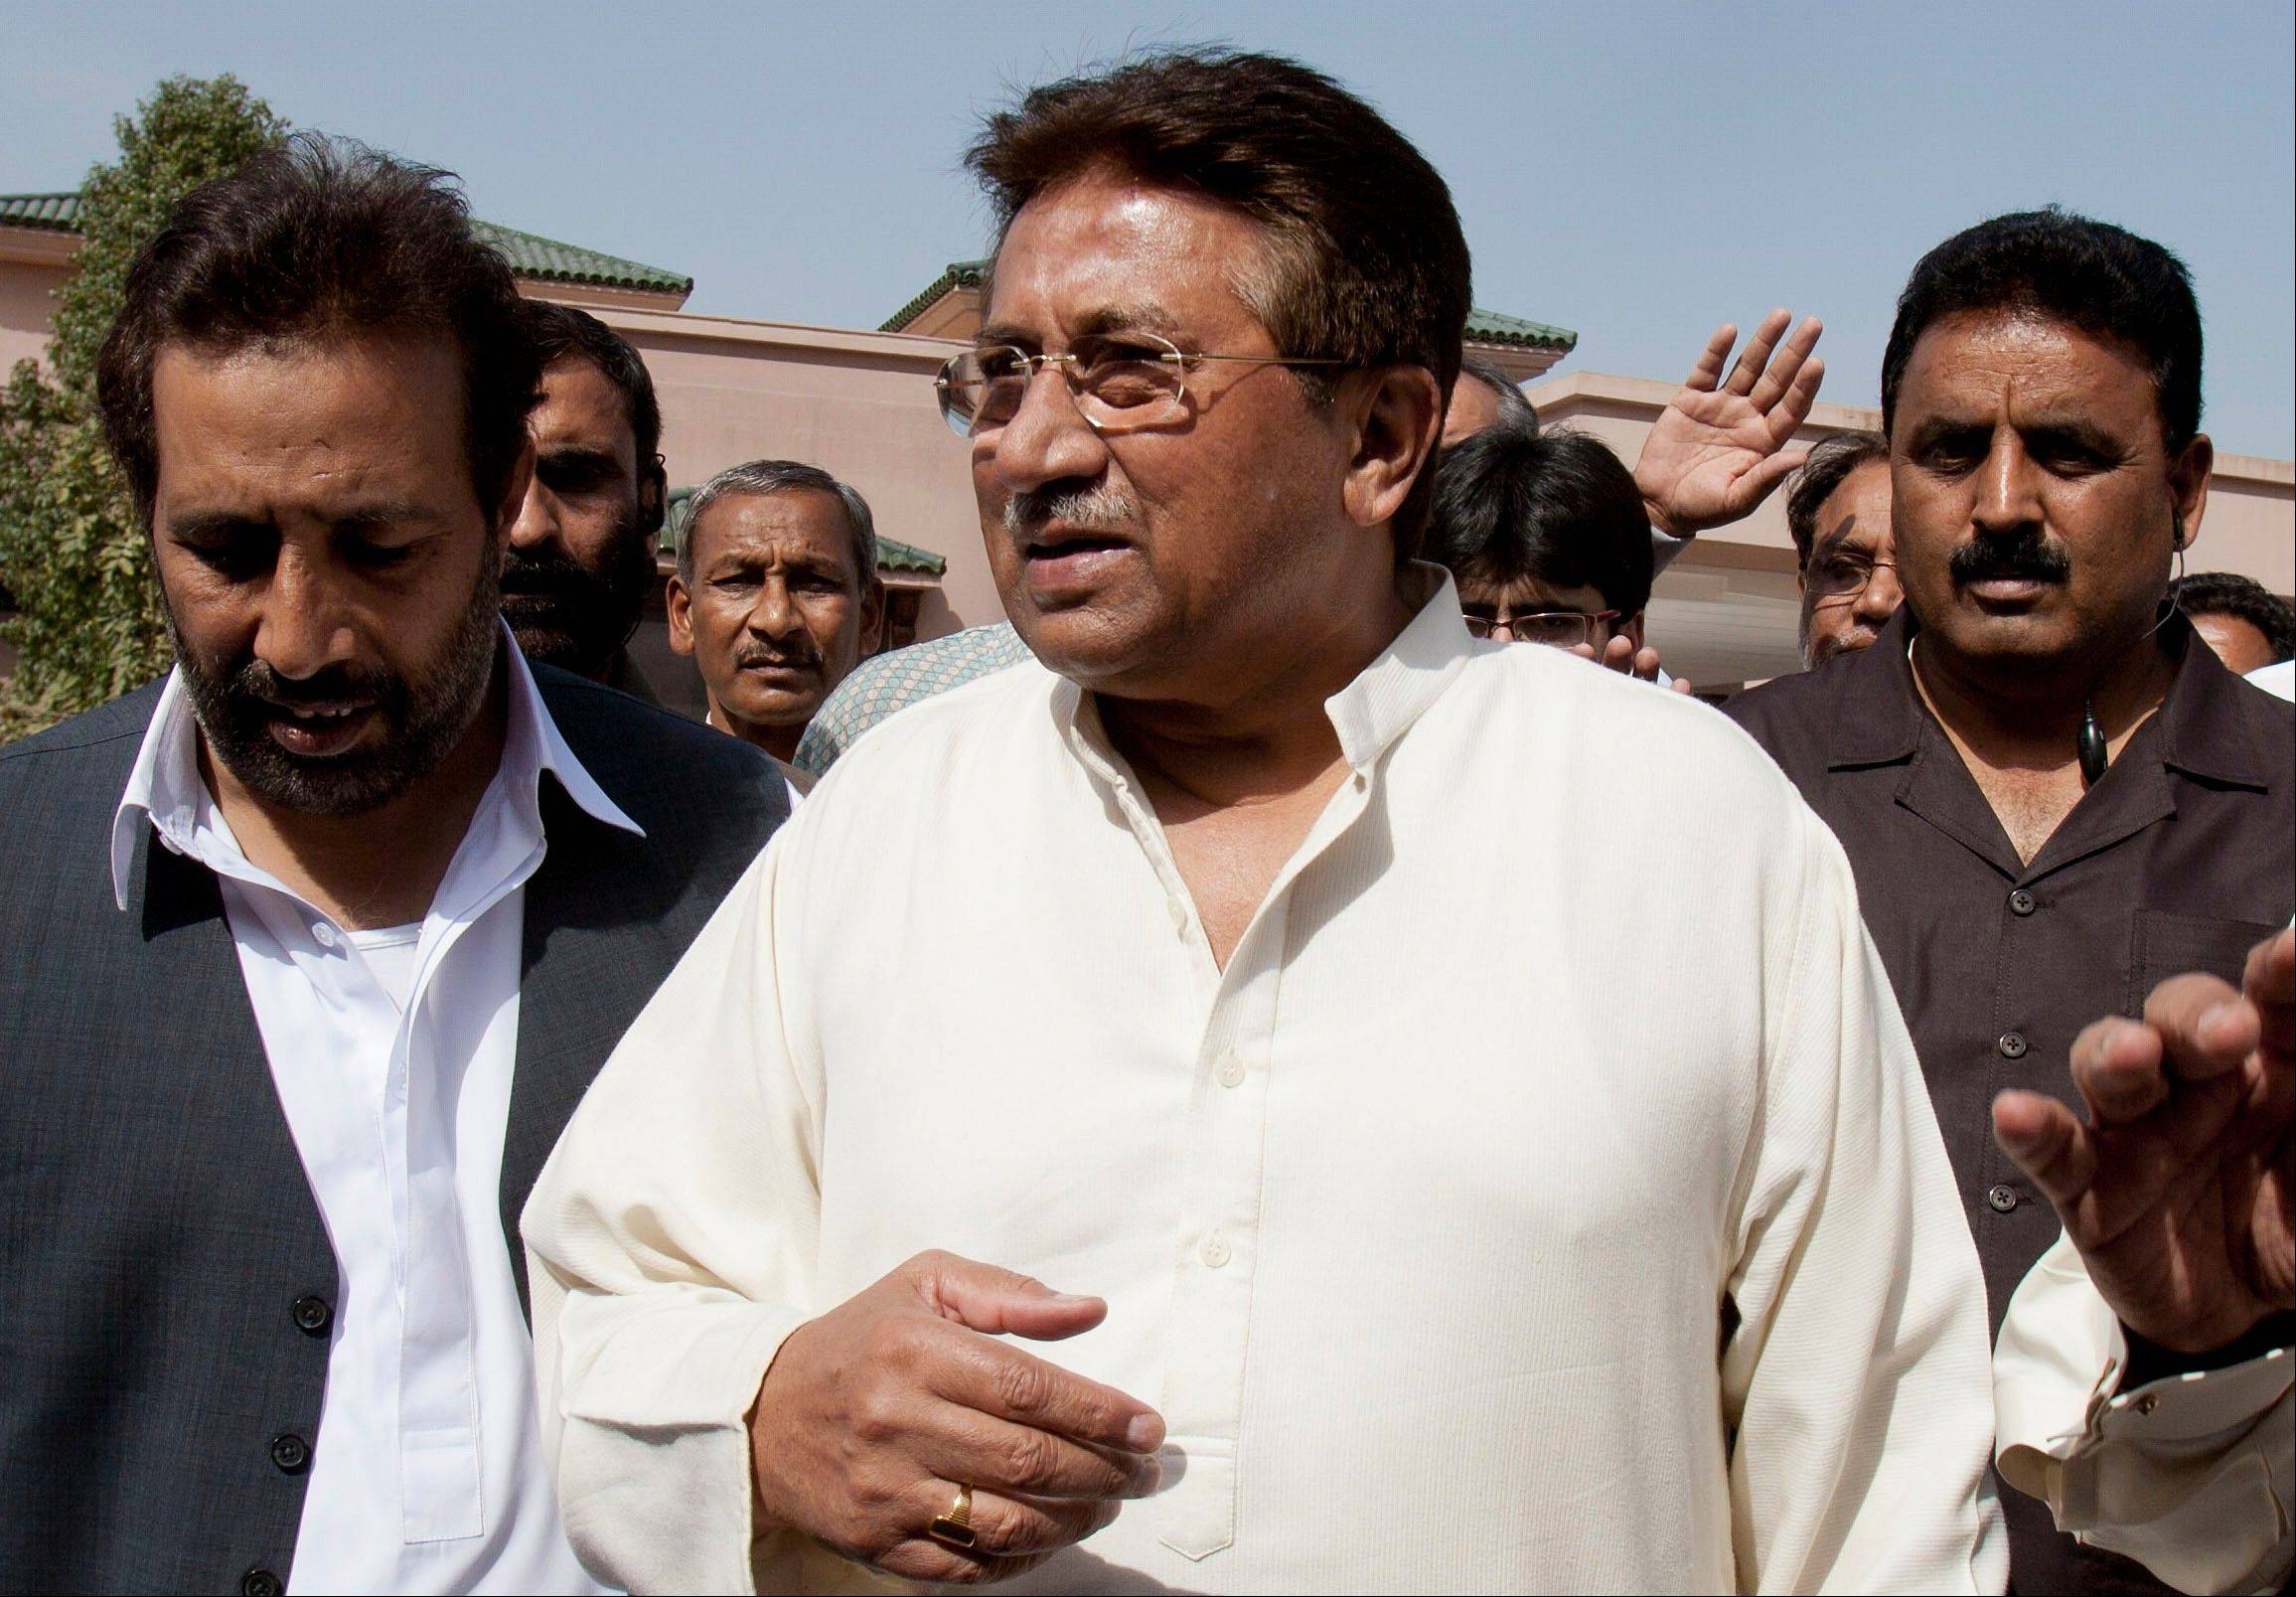 Pakistan's former President and military ruler Pervez Musharraf and his security team pushed past policemen and sped away from a court in the country's capital on Thursday after his bail was revoked in a case in which he is accused of treason.